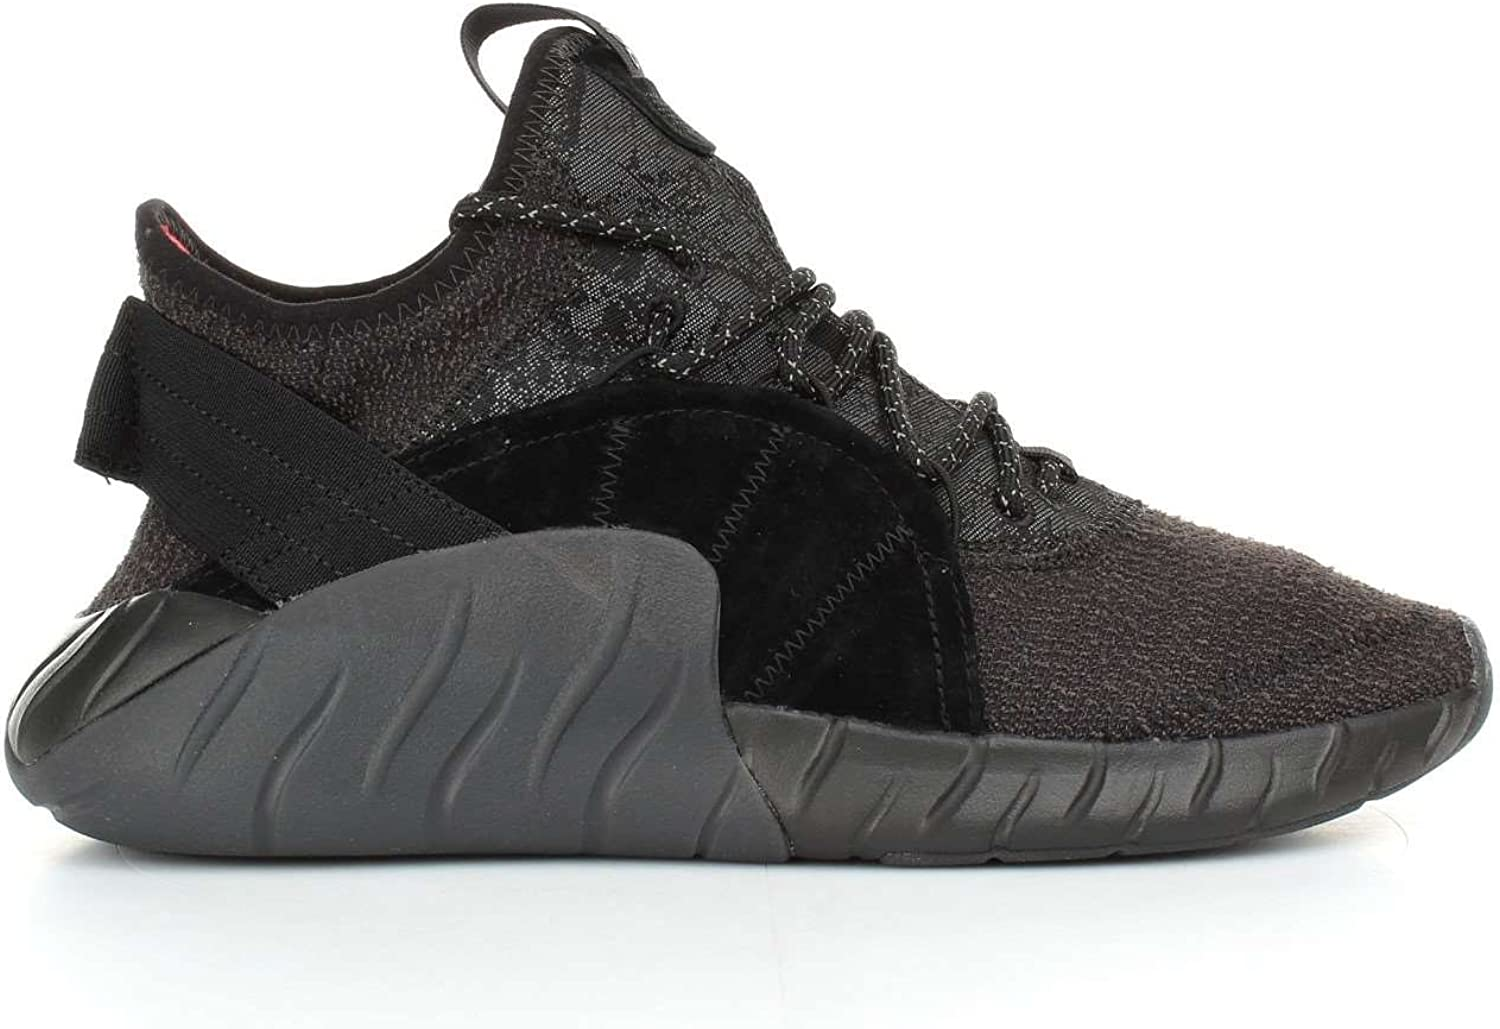 Adidas Unisex Adults' Tubular Rise Low-Top Sneakers